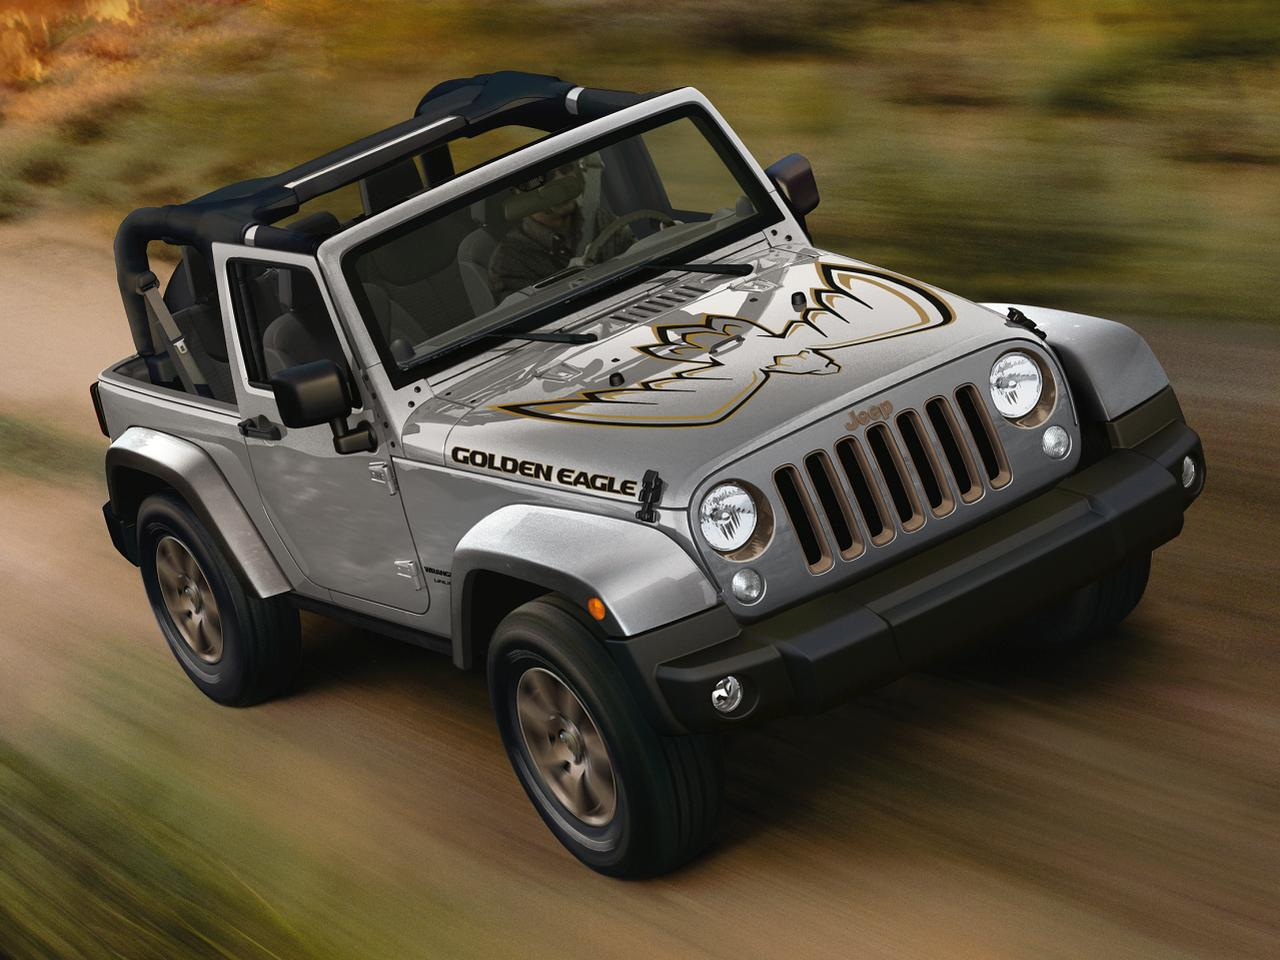 Bild zu Jeep Wrangler Golden Eagle